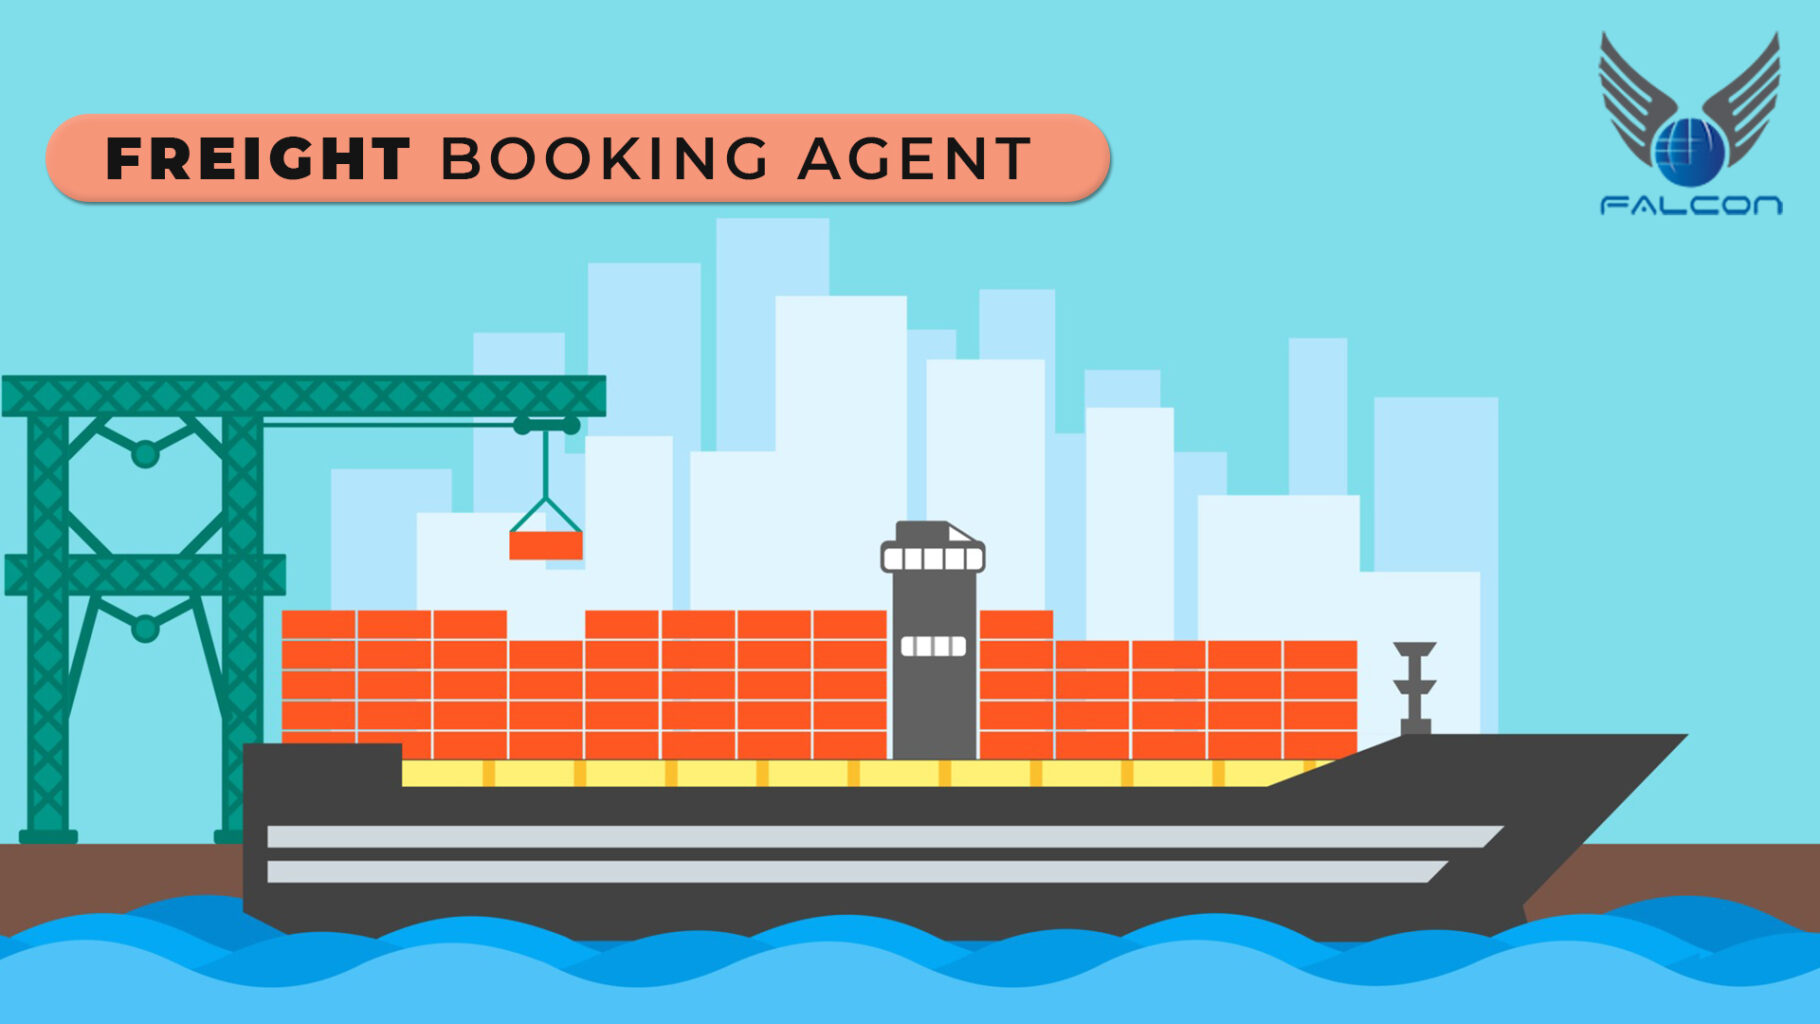 Freight booking agent